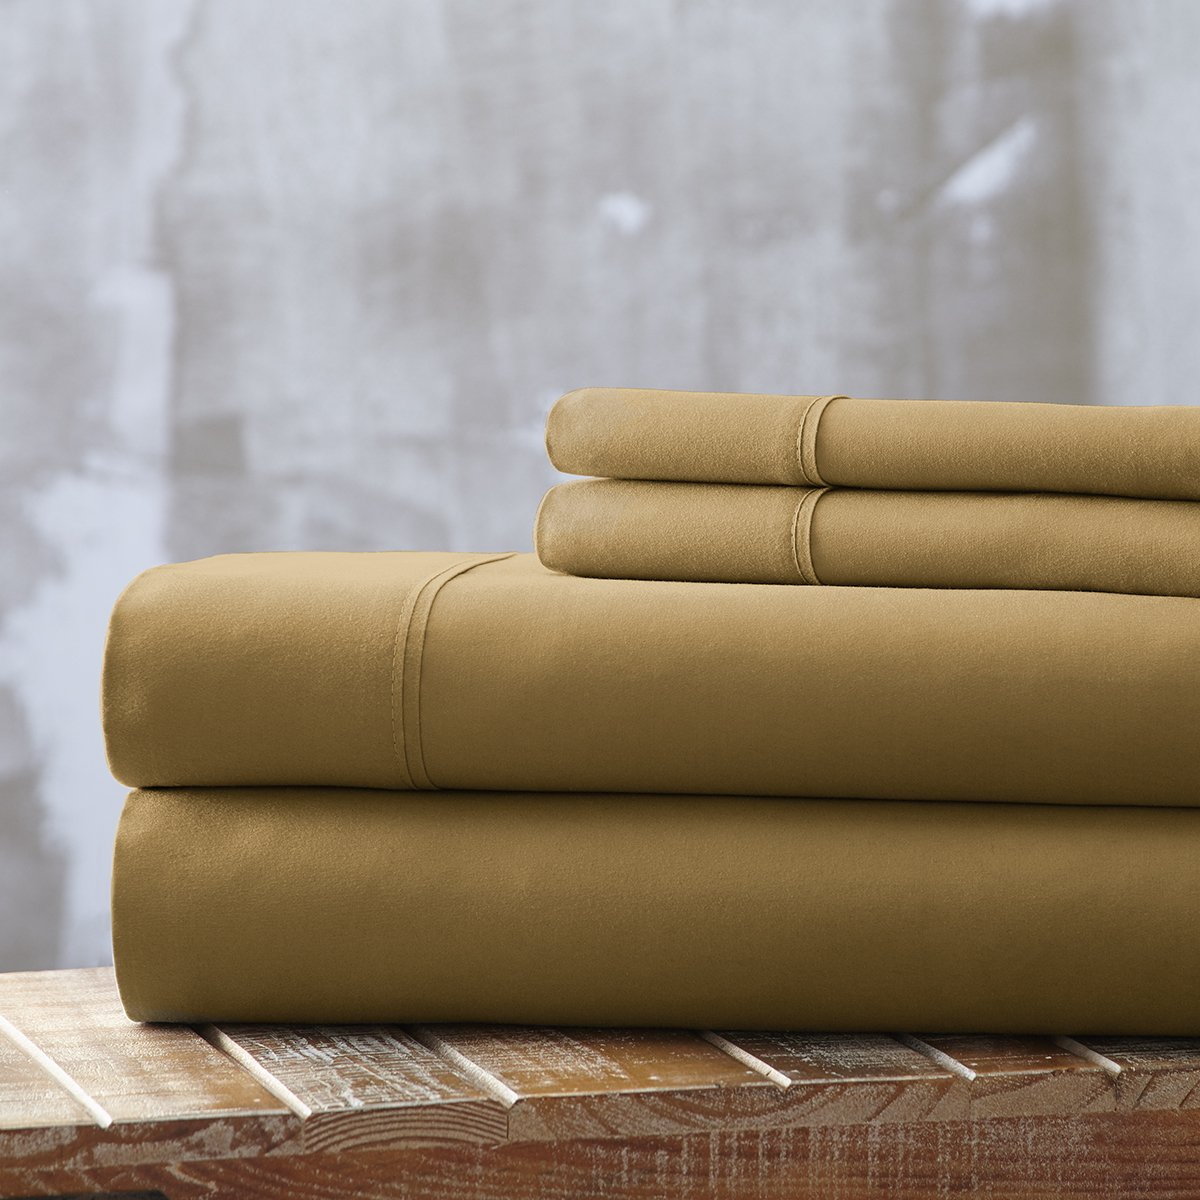 Spirit Linen, Inc Hotel 5th Ave EE-QUEEN-GOLD-4PC Queen Gold Everyday Essentials 1800 Series 4Pc Sheet Set